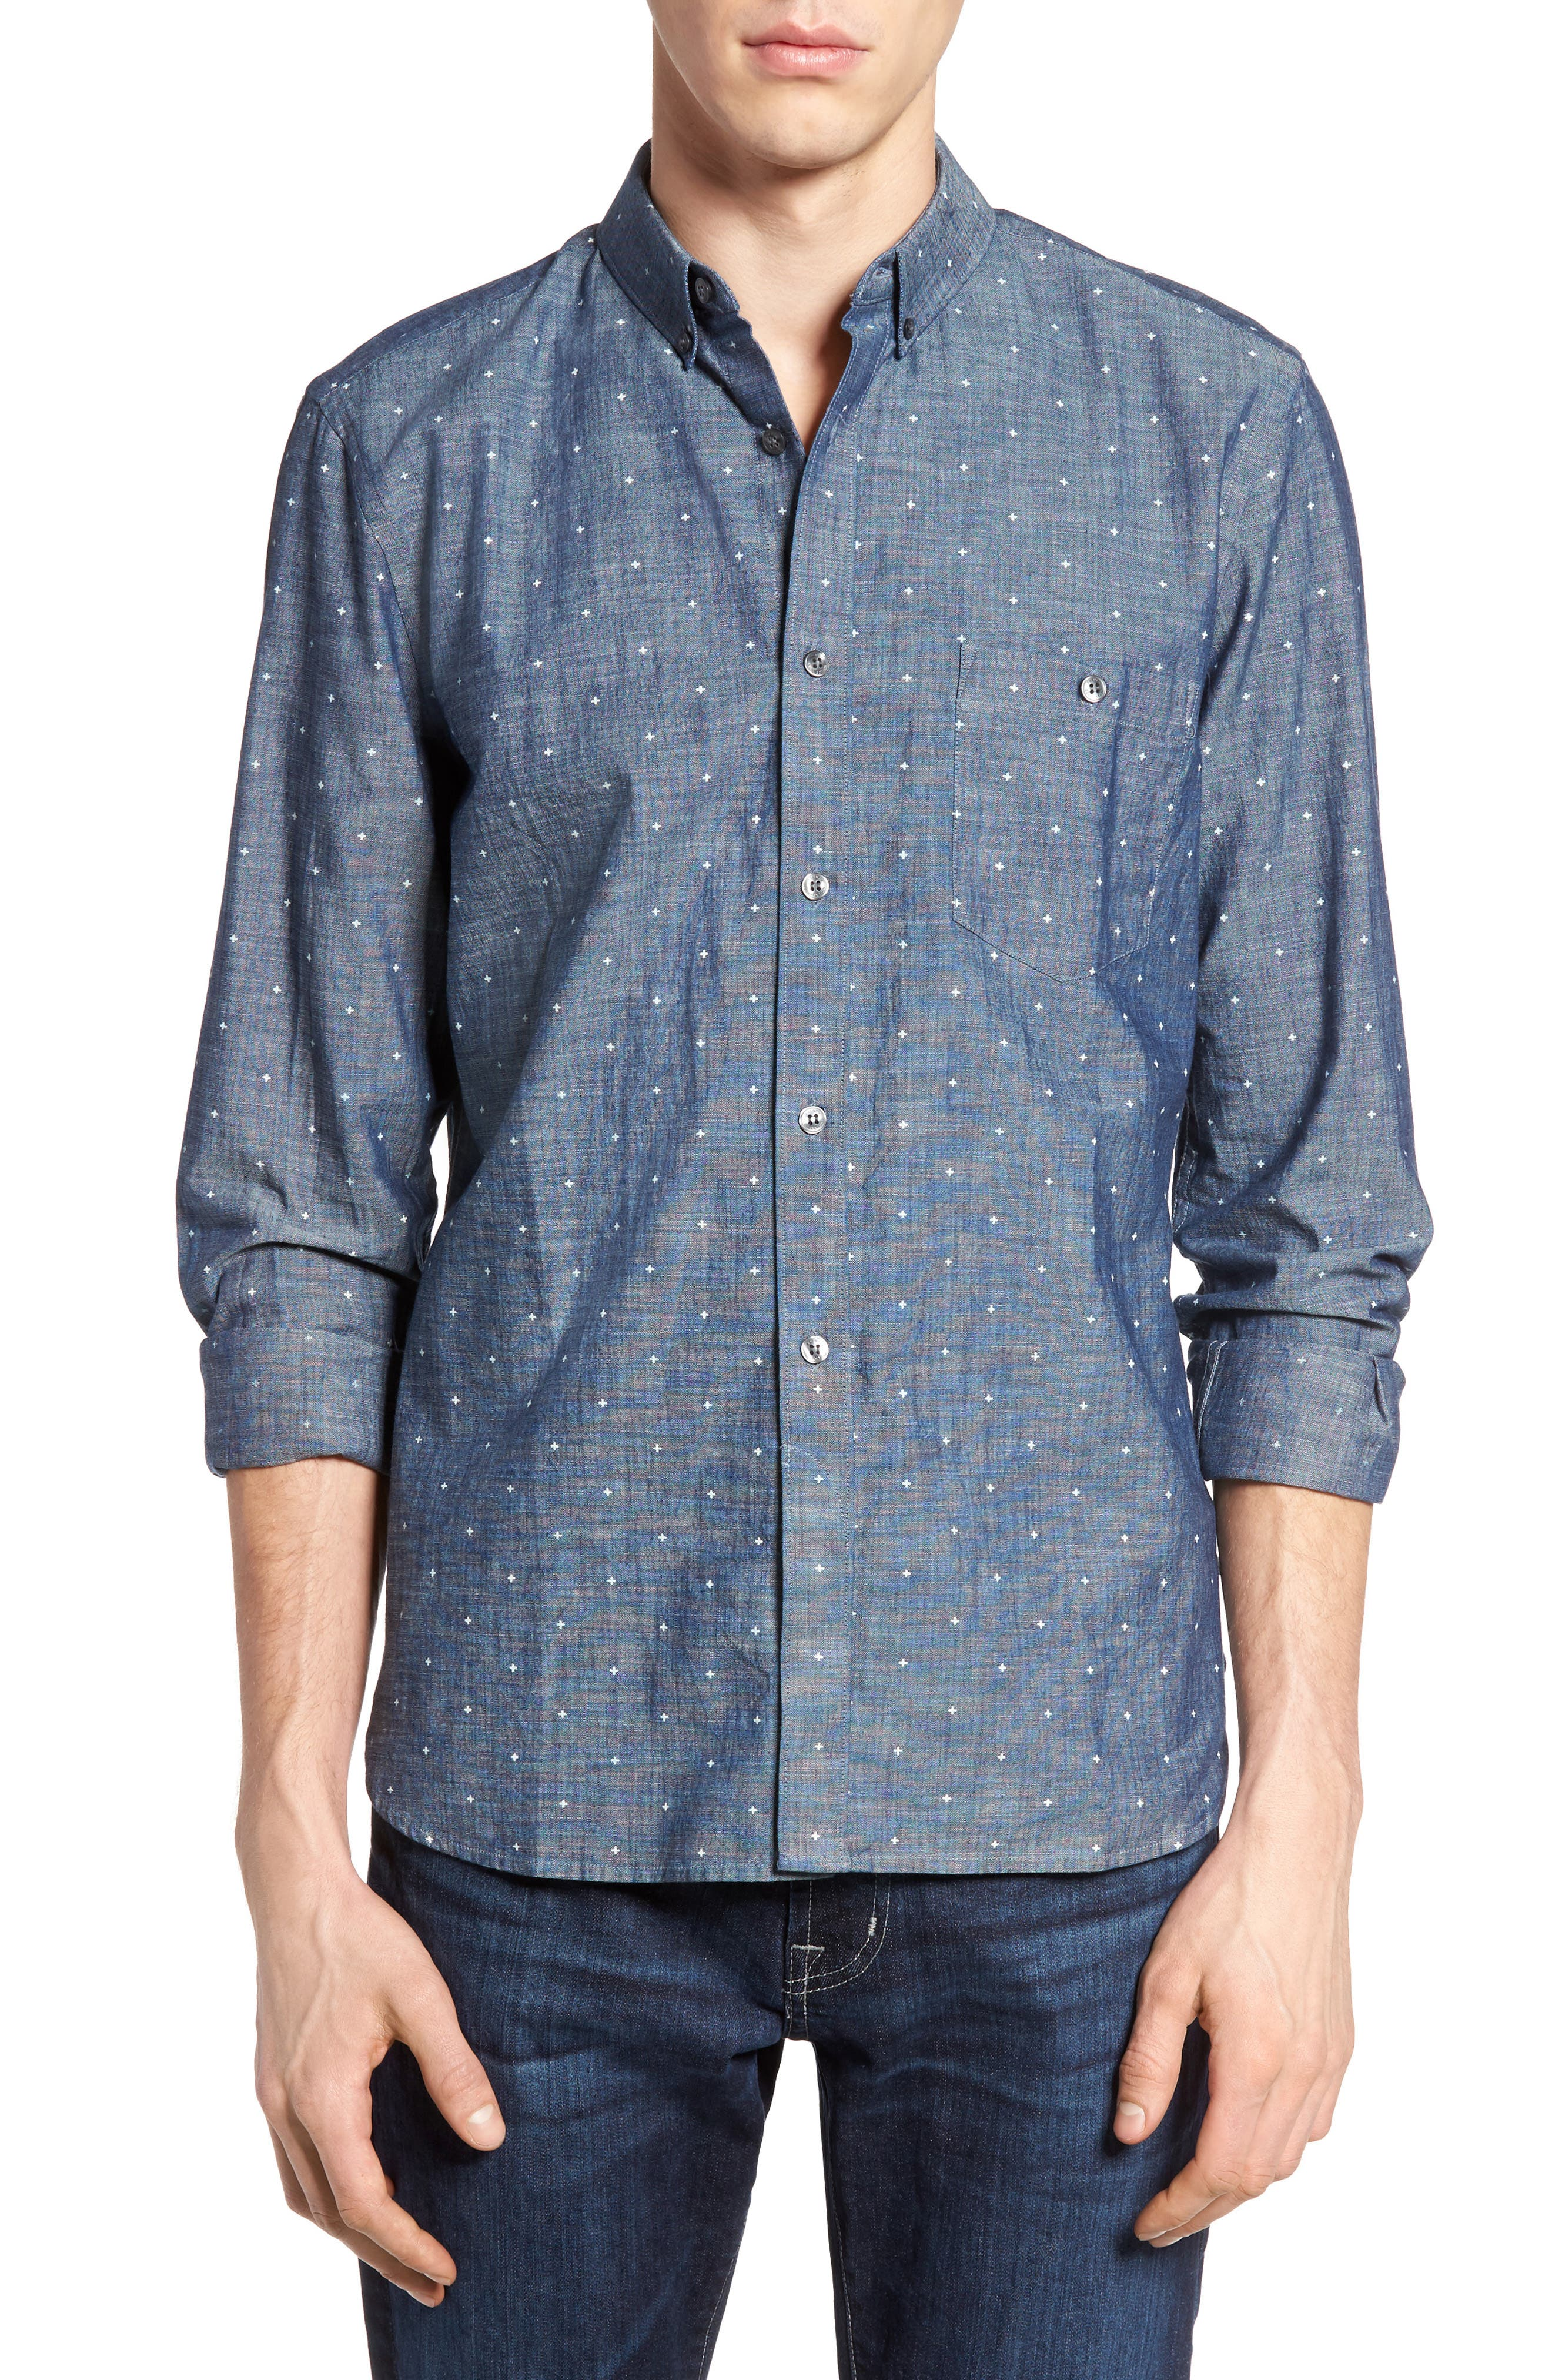 Main Image - French Connection Print Slub Chambray Shirt